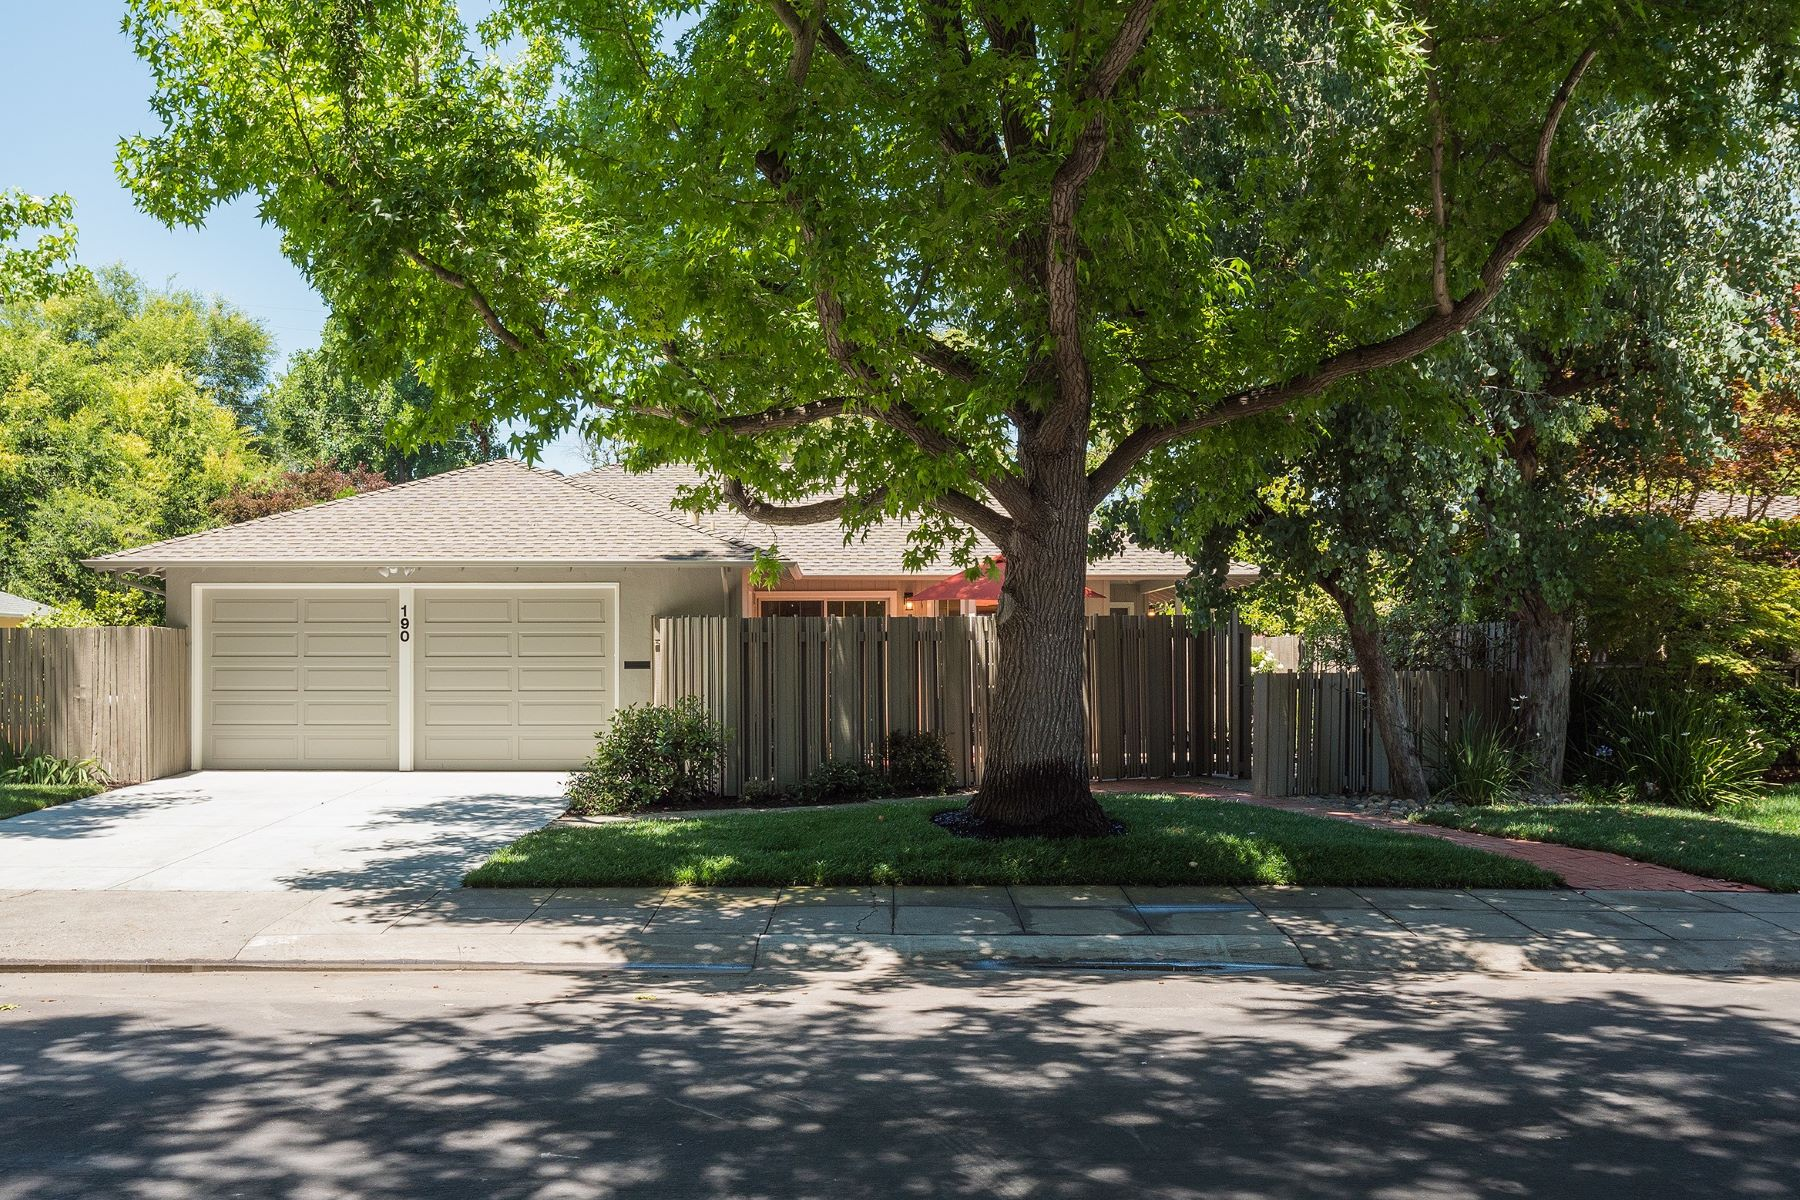 Single Family Home for Sale at 190 Walter Hays Dr Palo Alto, California, 94303 United States